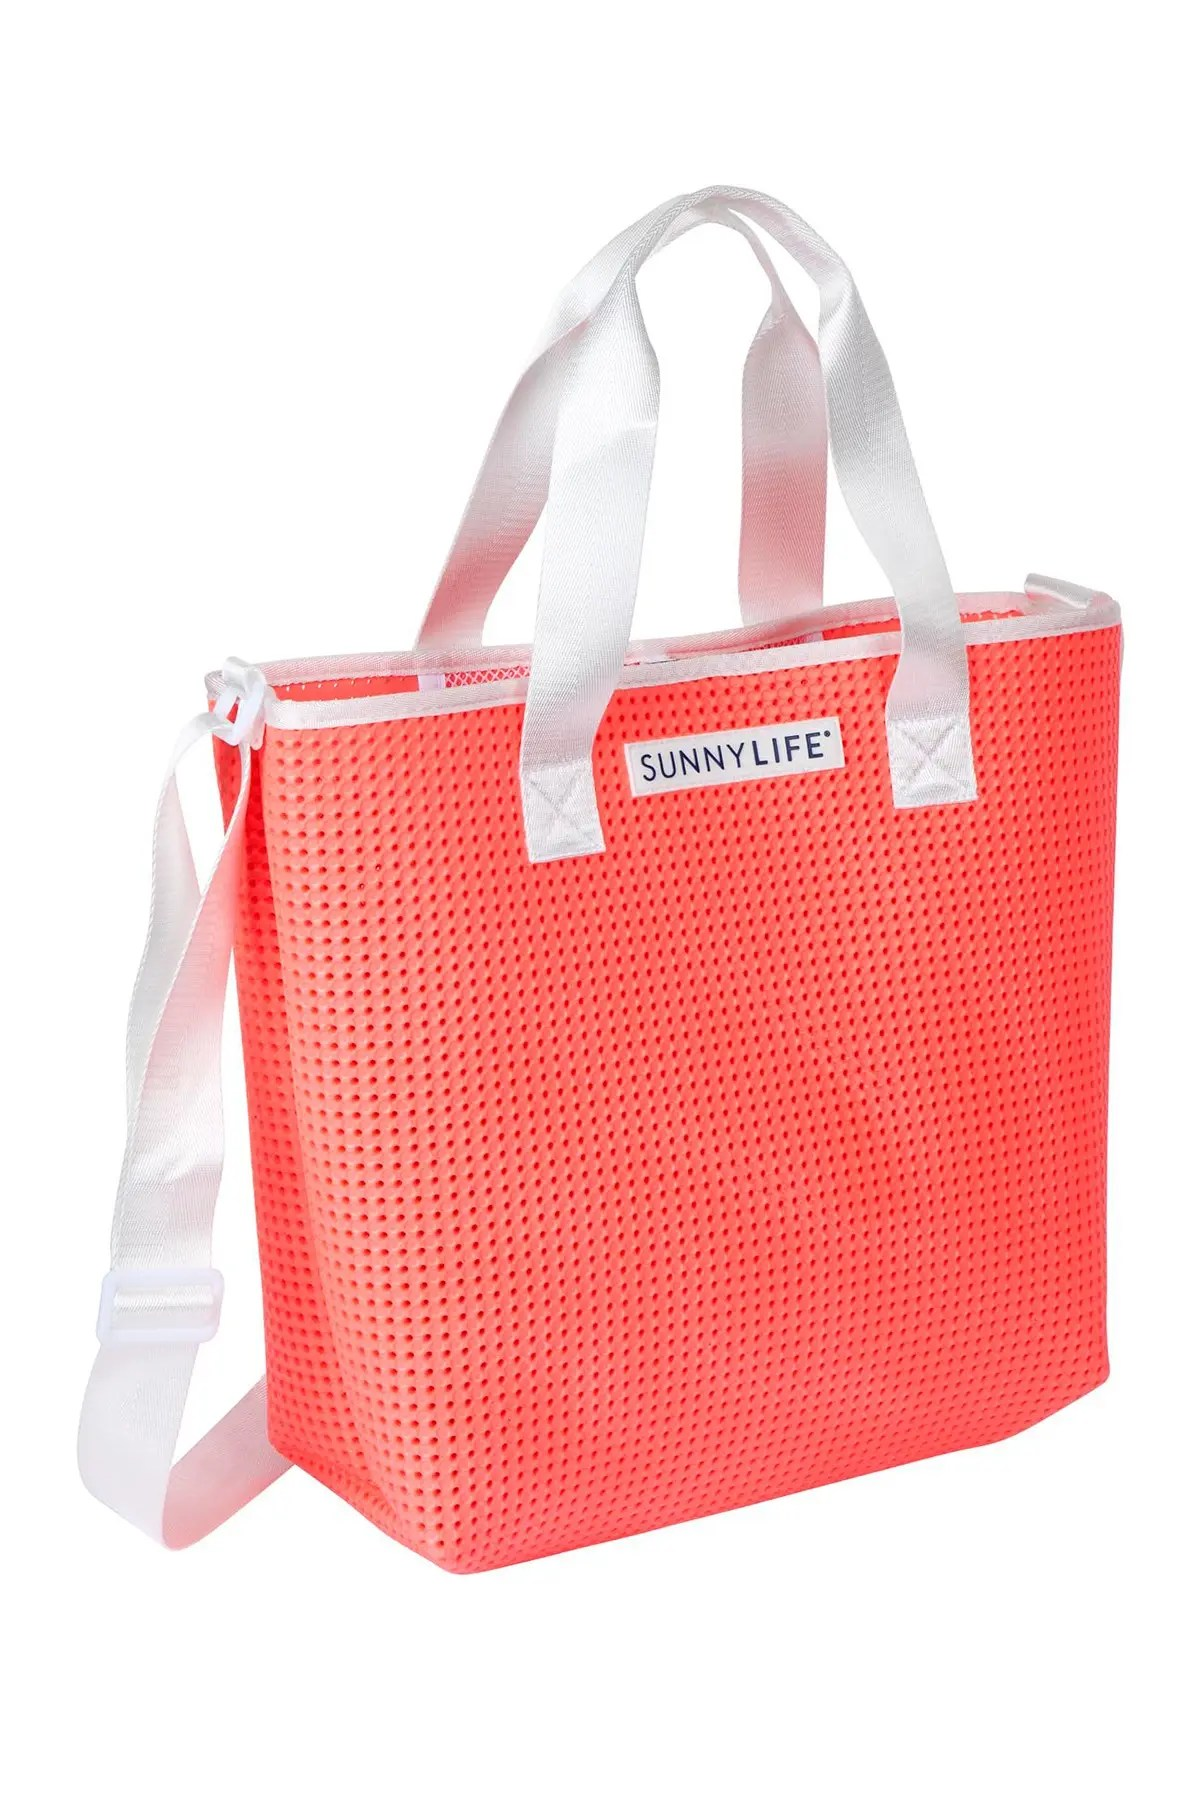 Sunnylife Refresh Tote Bag Neon Coral Nordstrom Rack